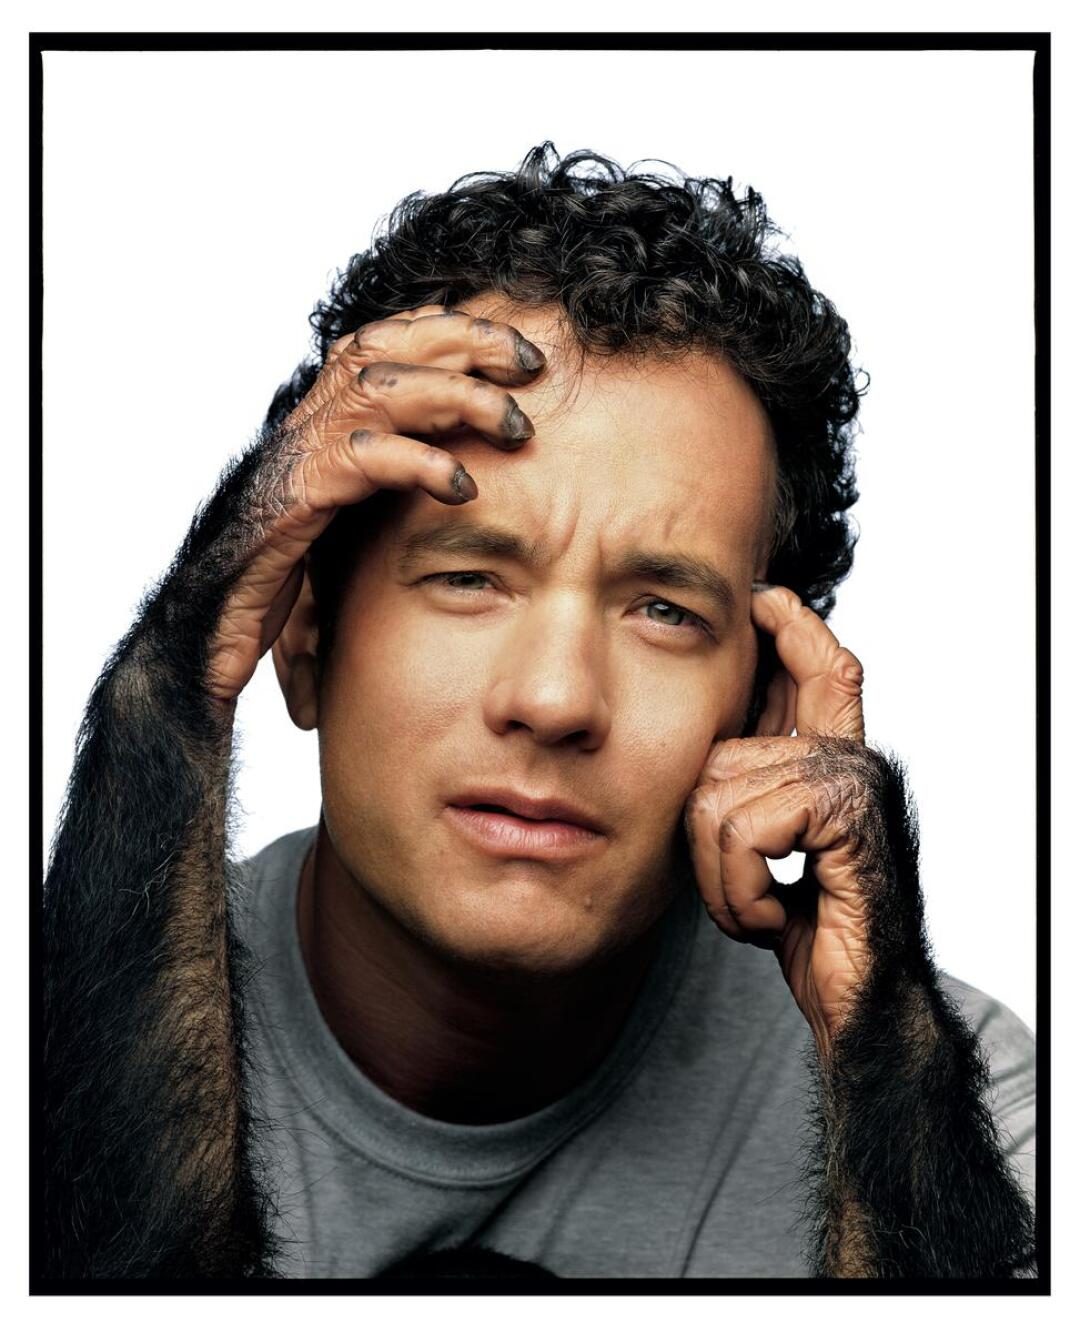 Tom Hanks, photographed on June 6, 1994, for an US magazine cover story that August.